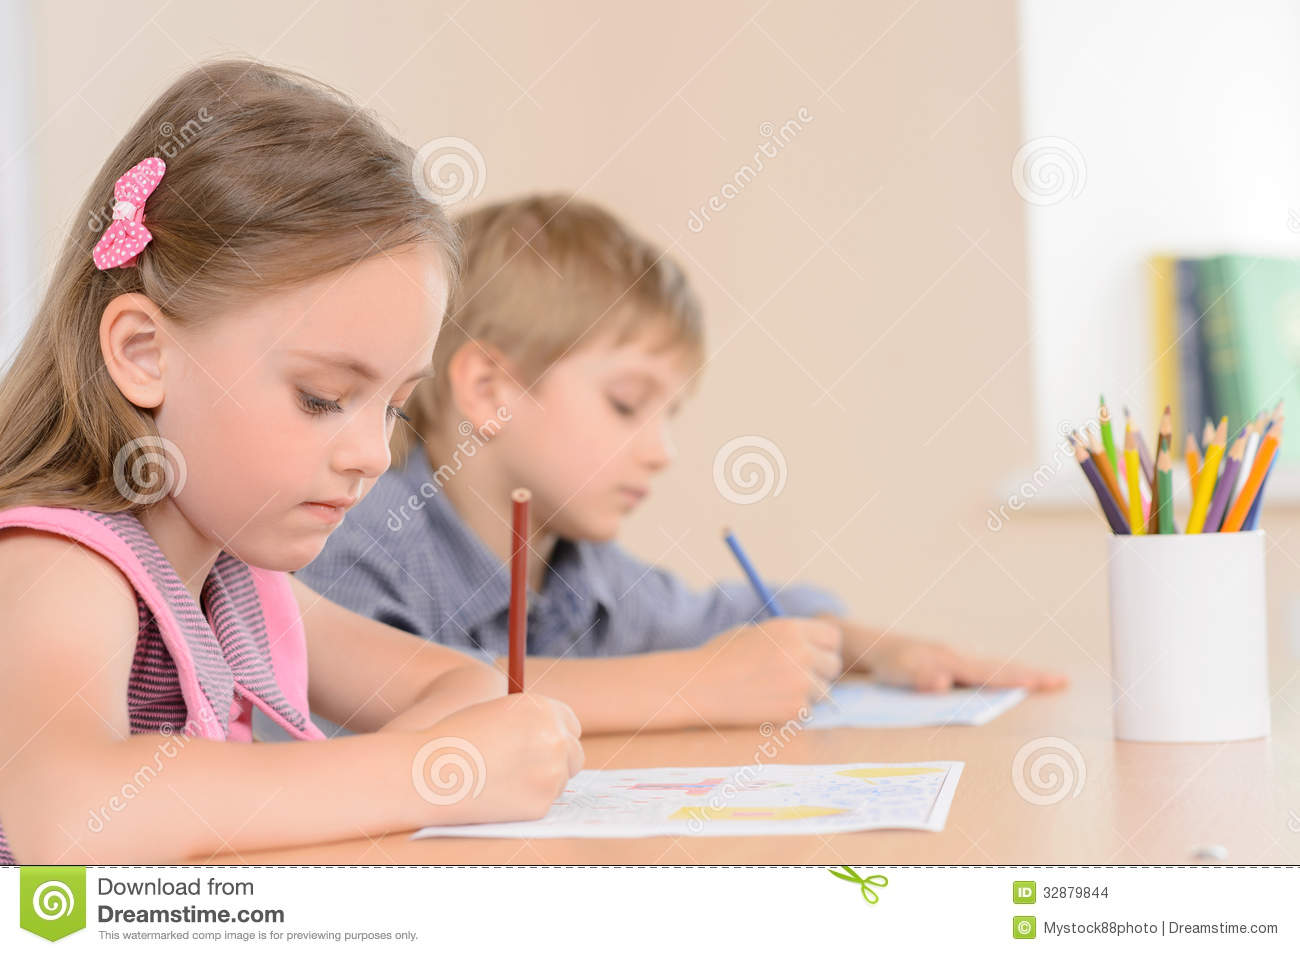 Diligent Young Learners. Stock Images - Image: 32879844